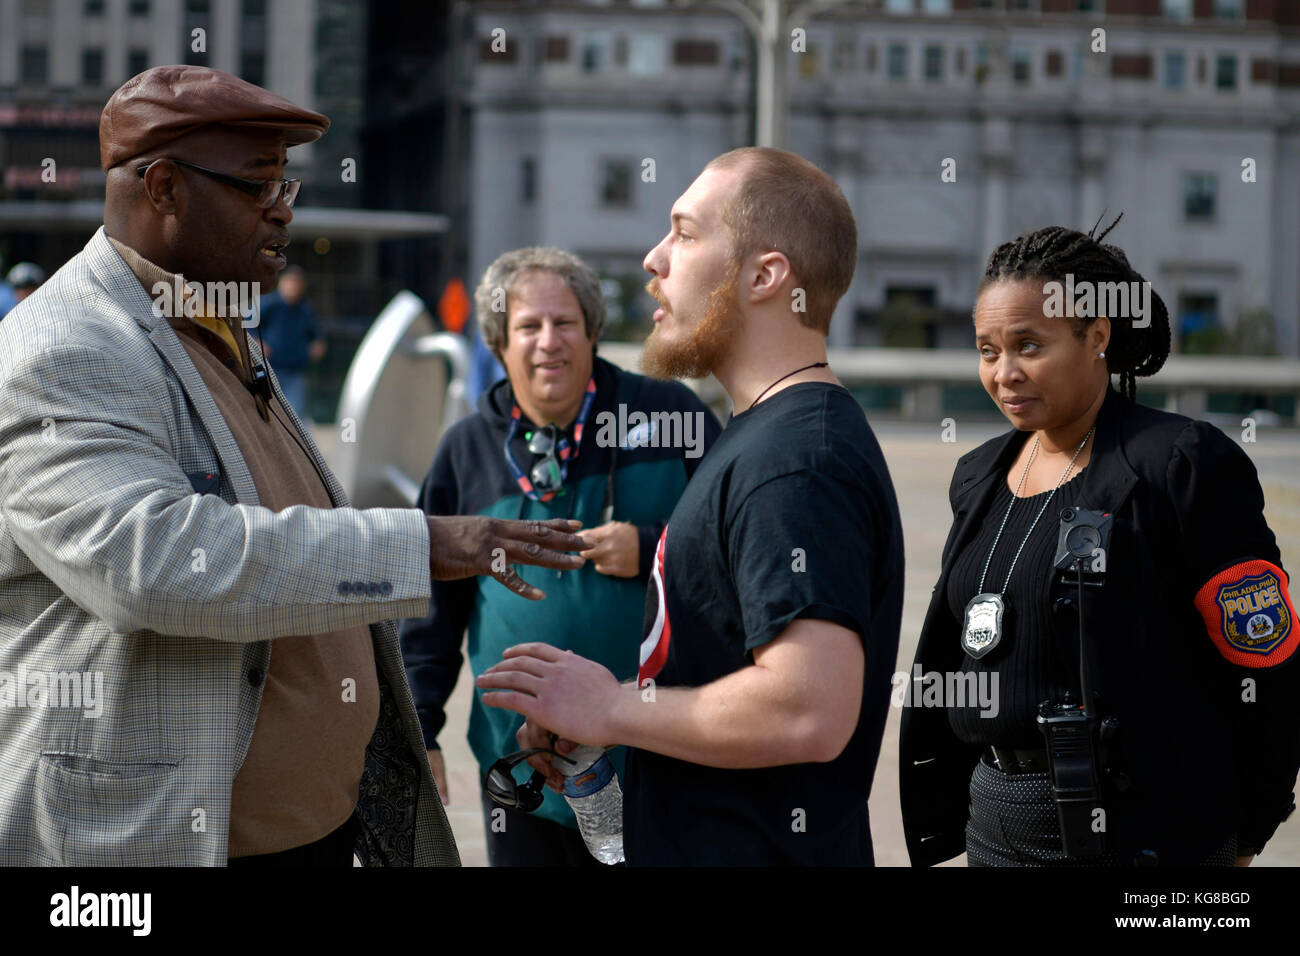 Philadelphia, United States. 04th Nov, 2017. Officers of the Civil Affairs unit speak to an unidentified counter - Stock Image